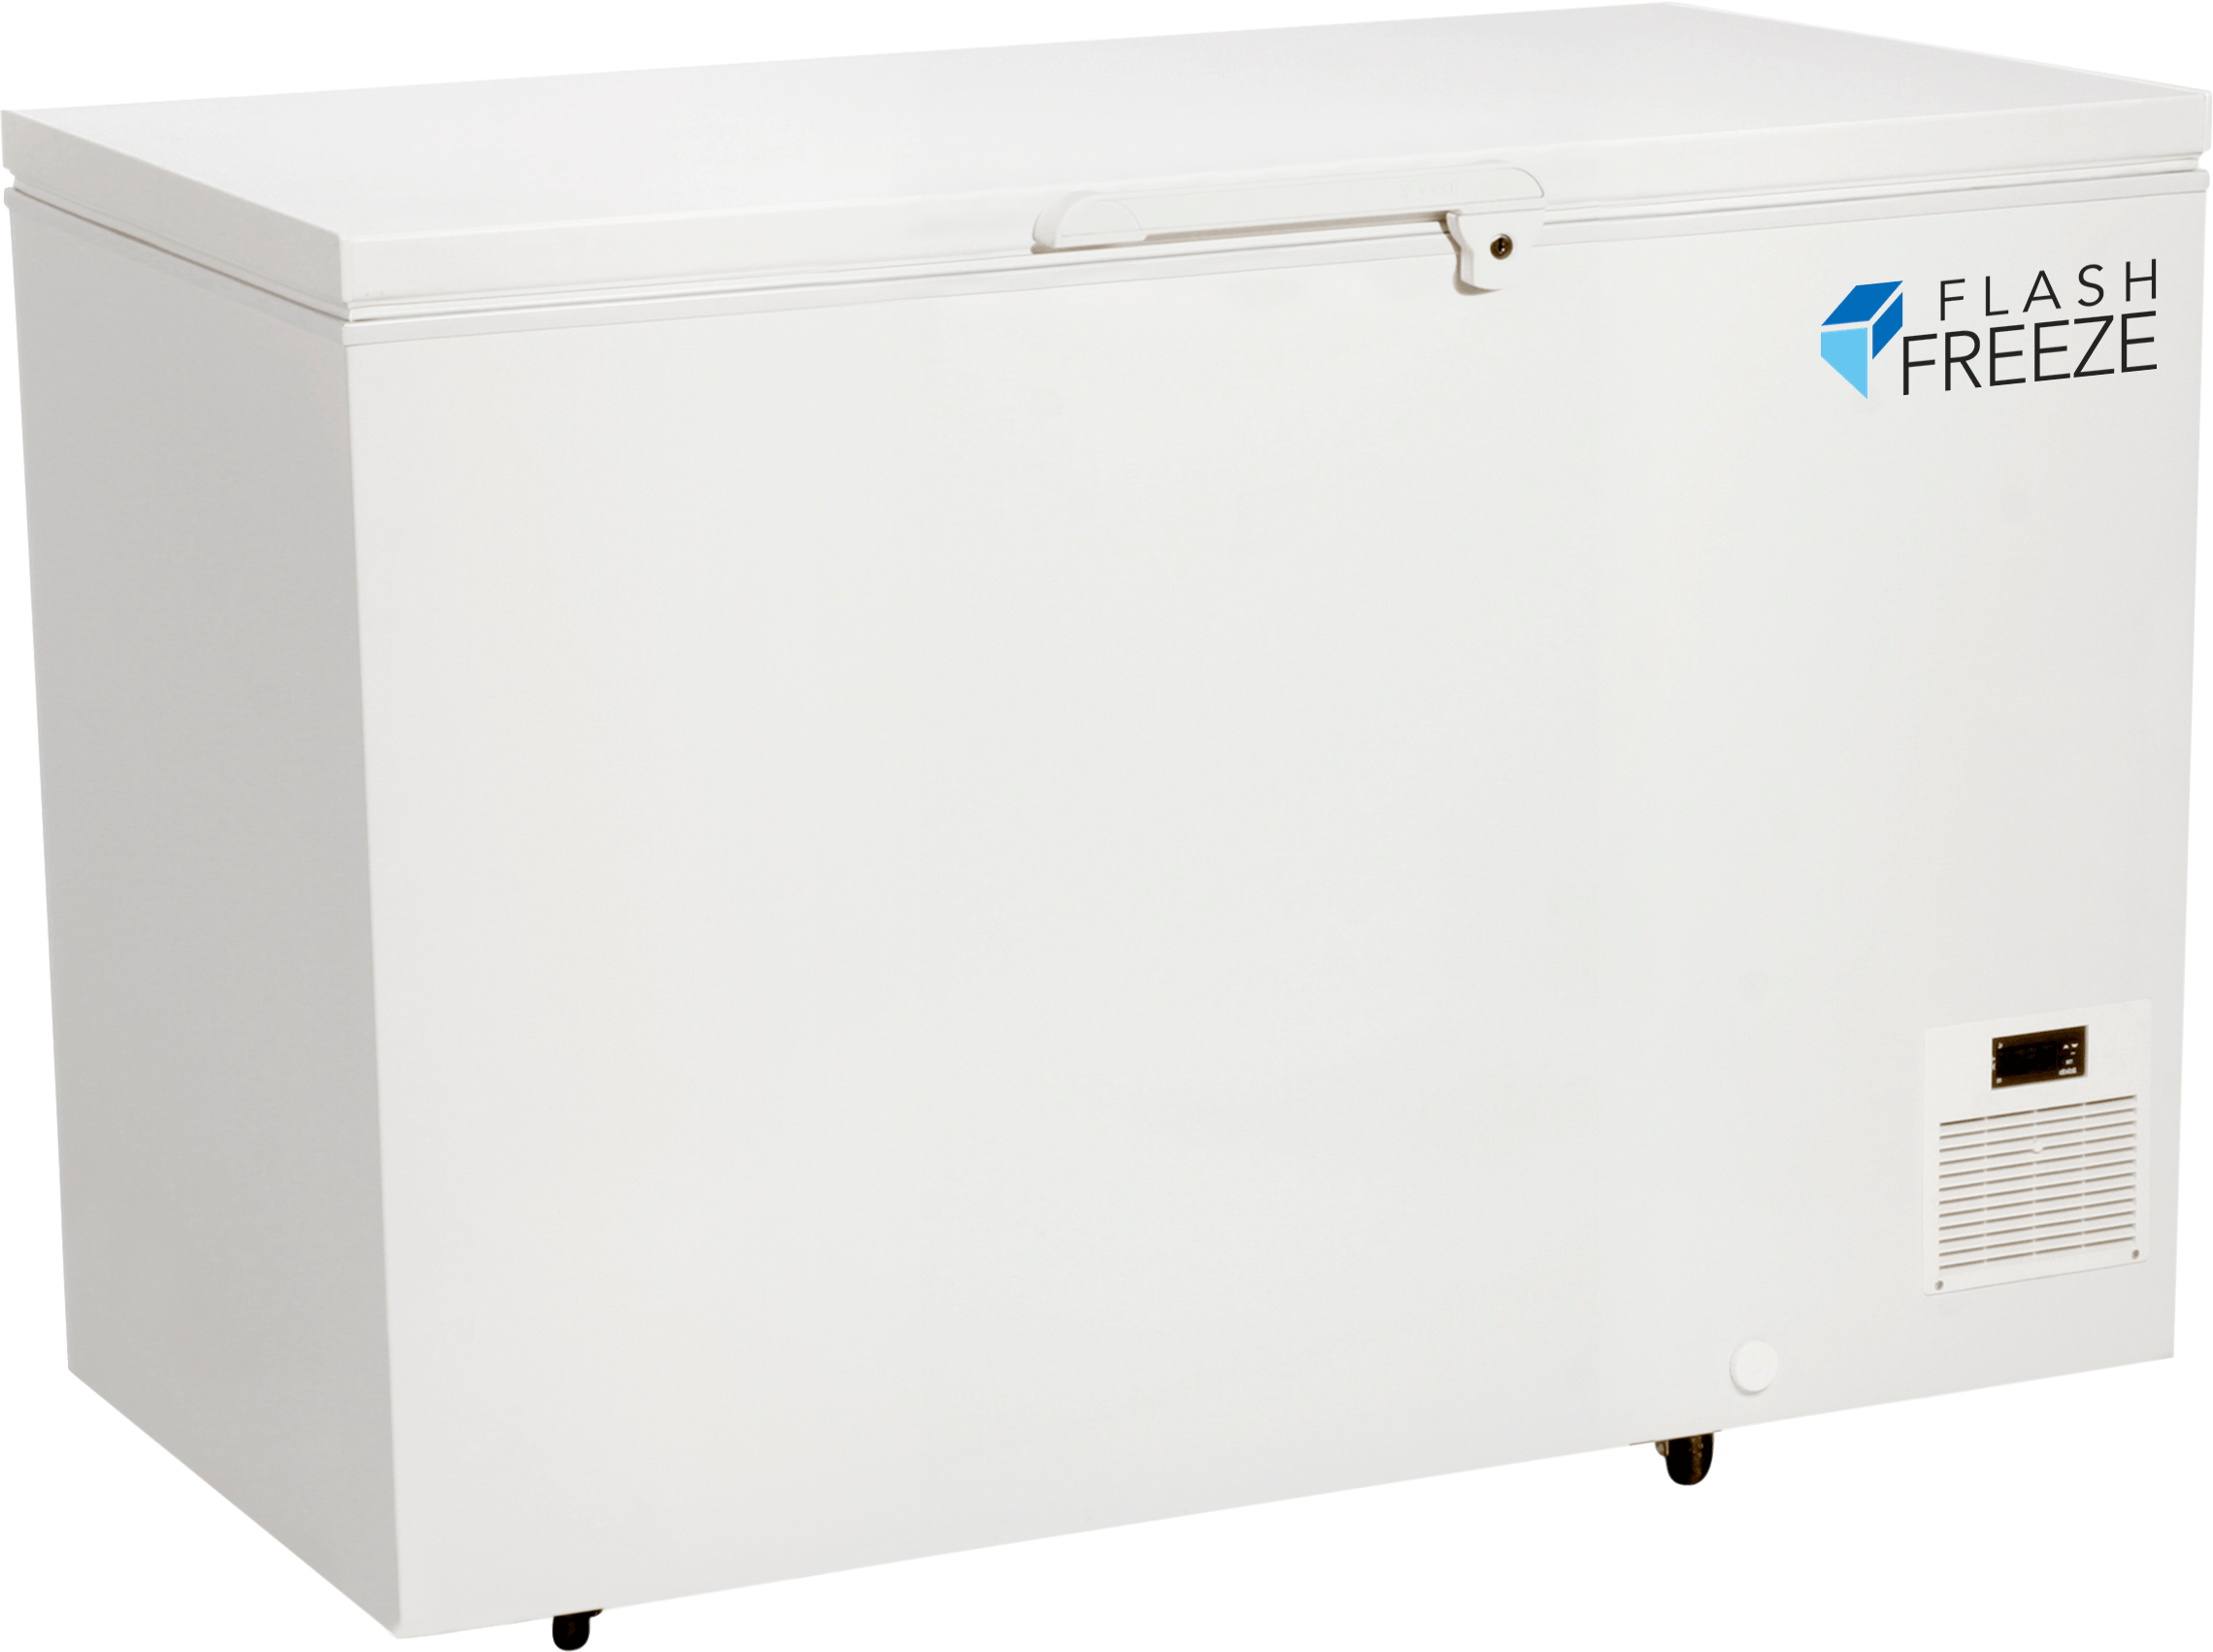 Image of our Pro 21 Storage Freezer